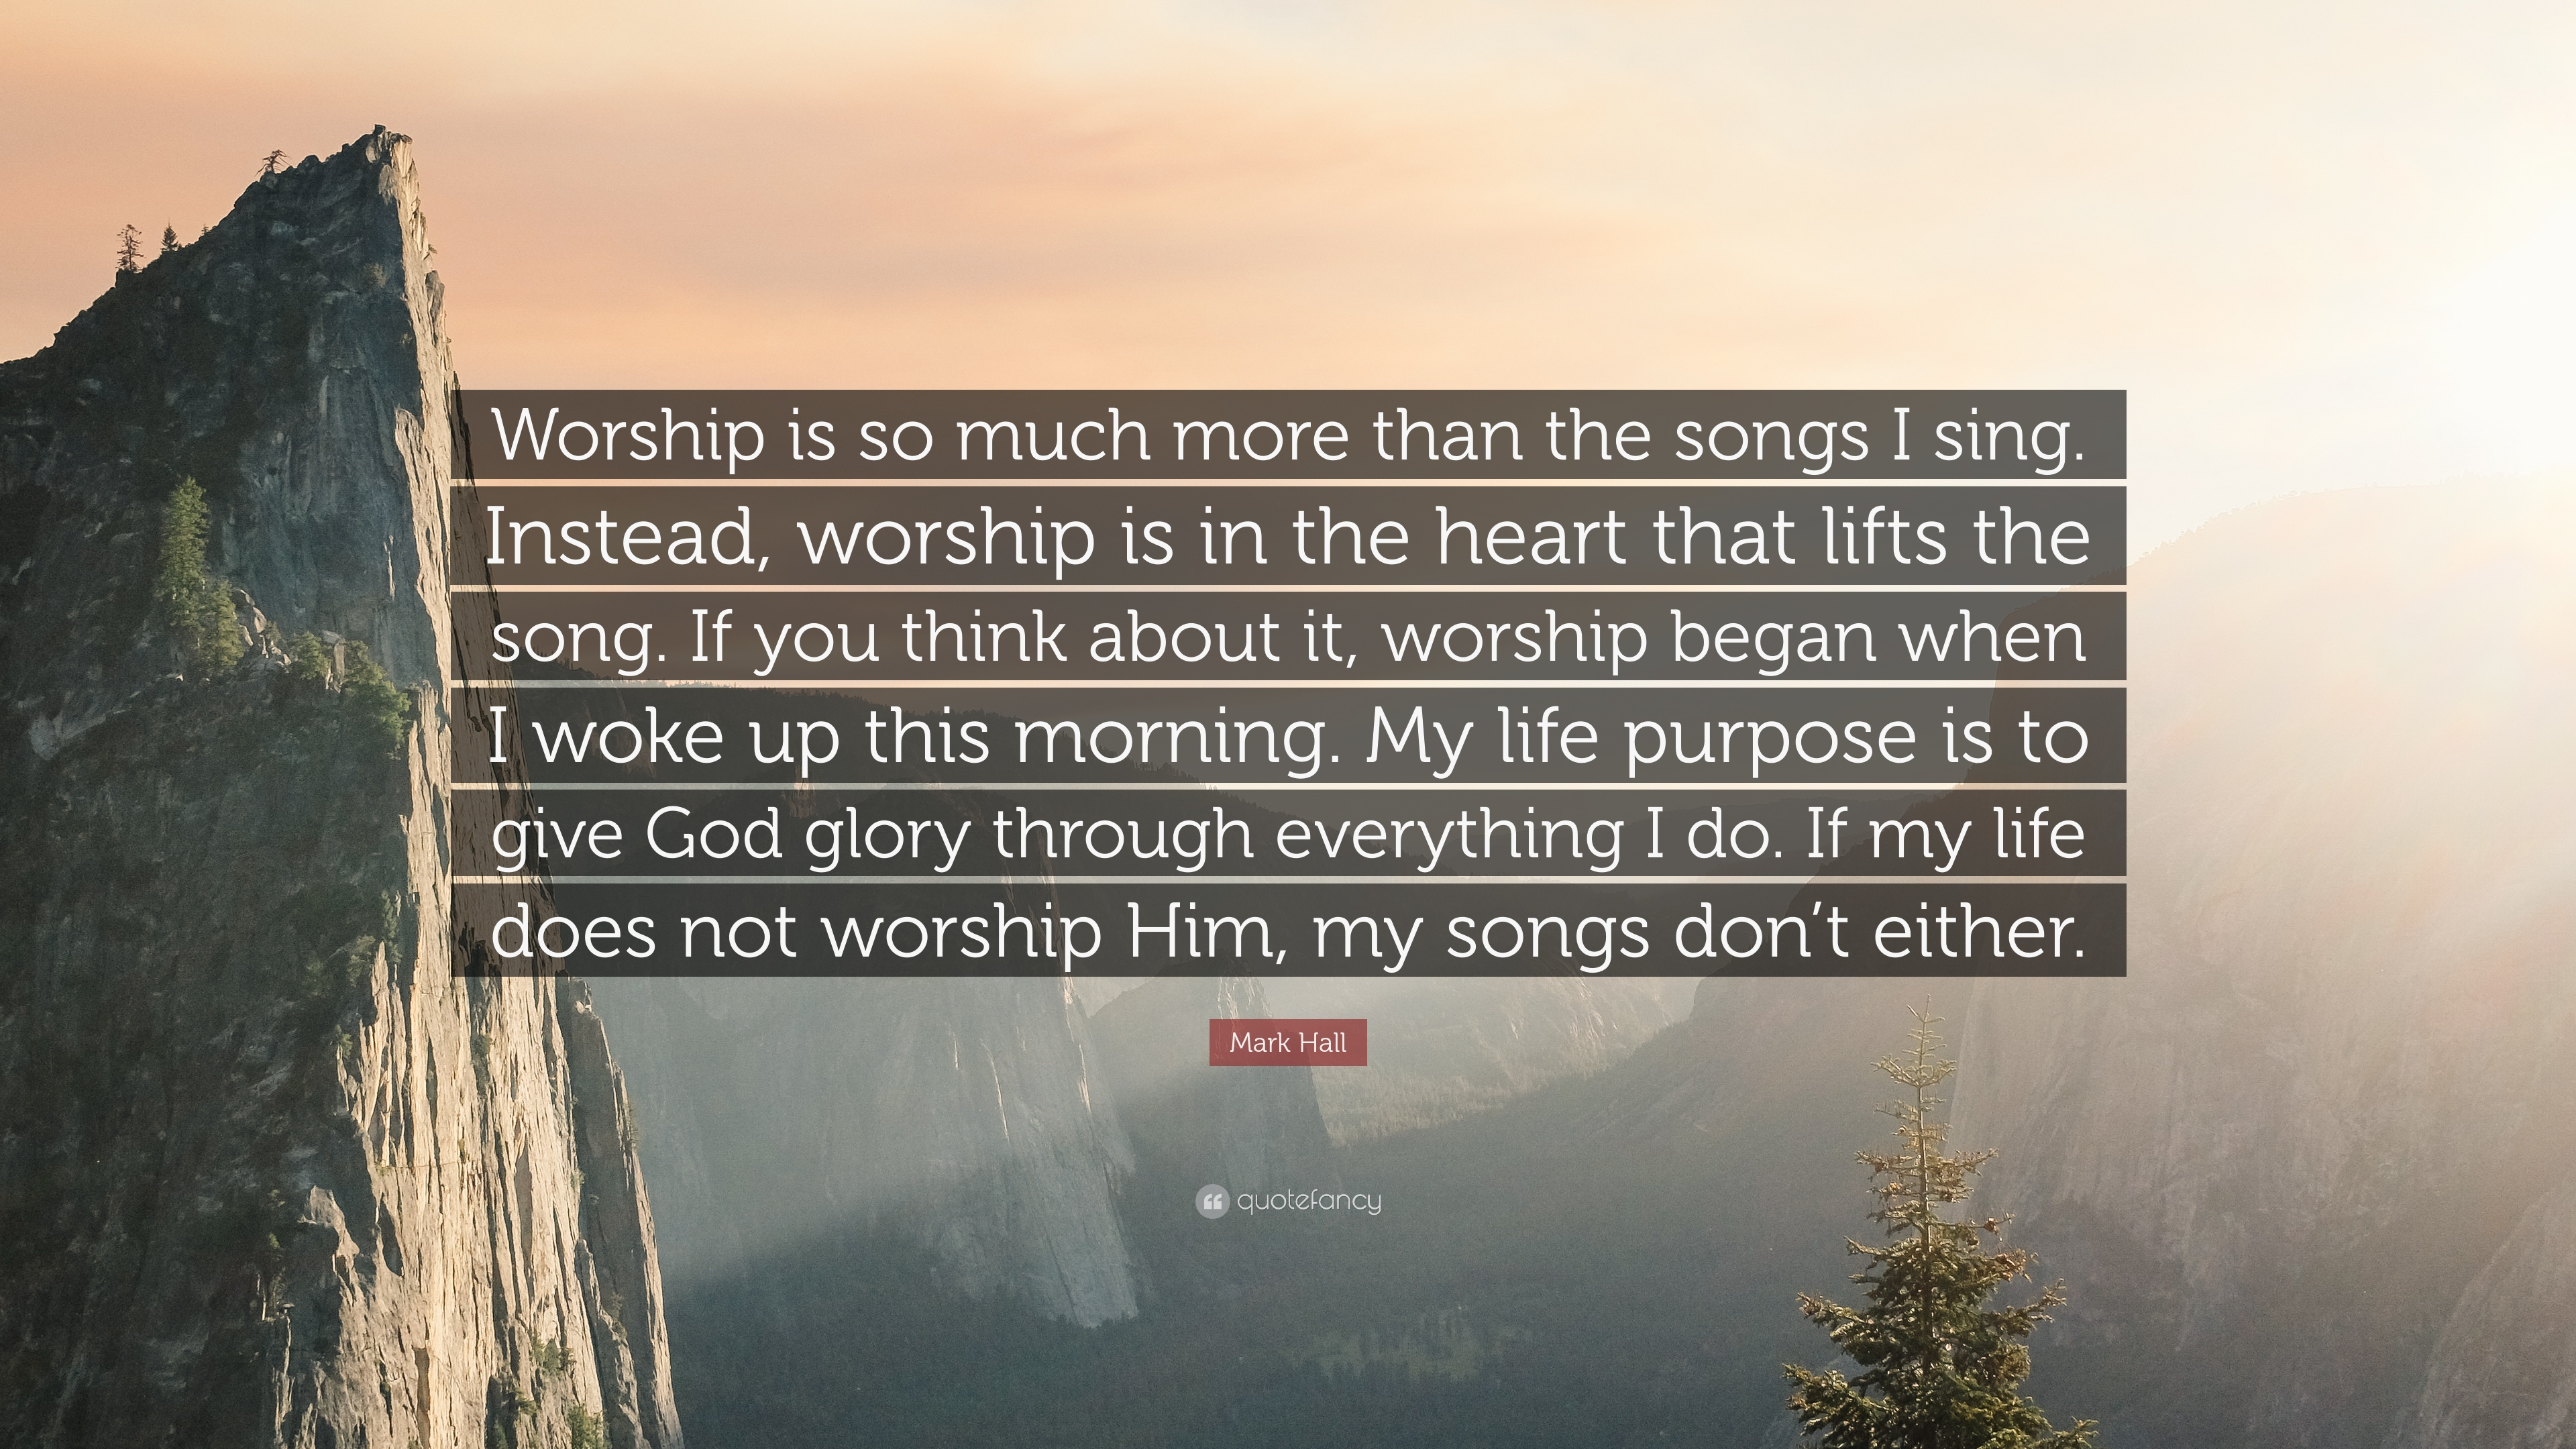 Worship songs about purpose